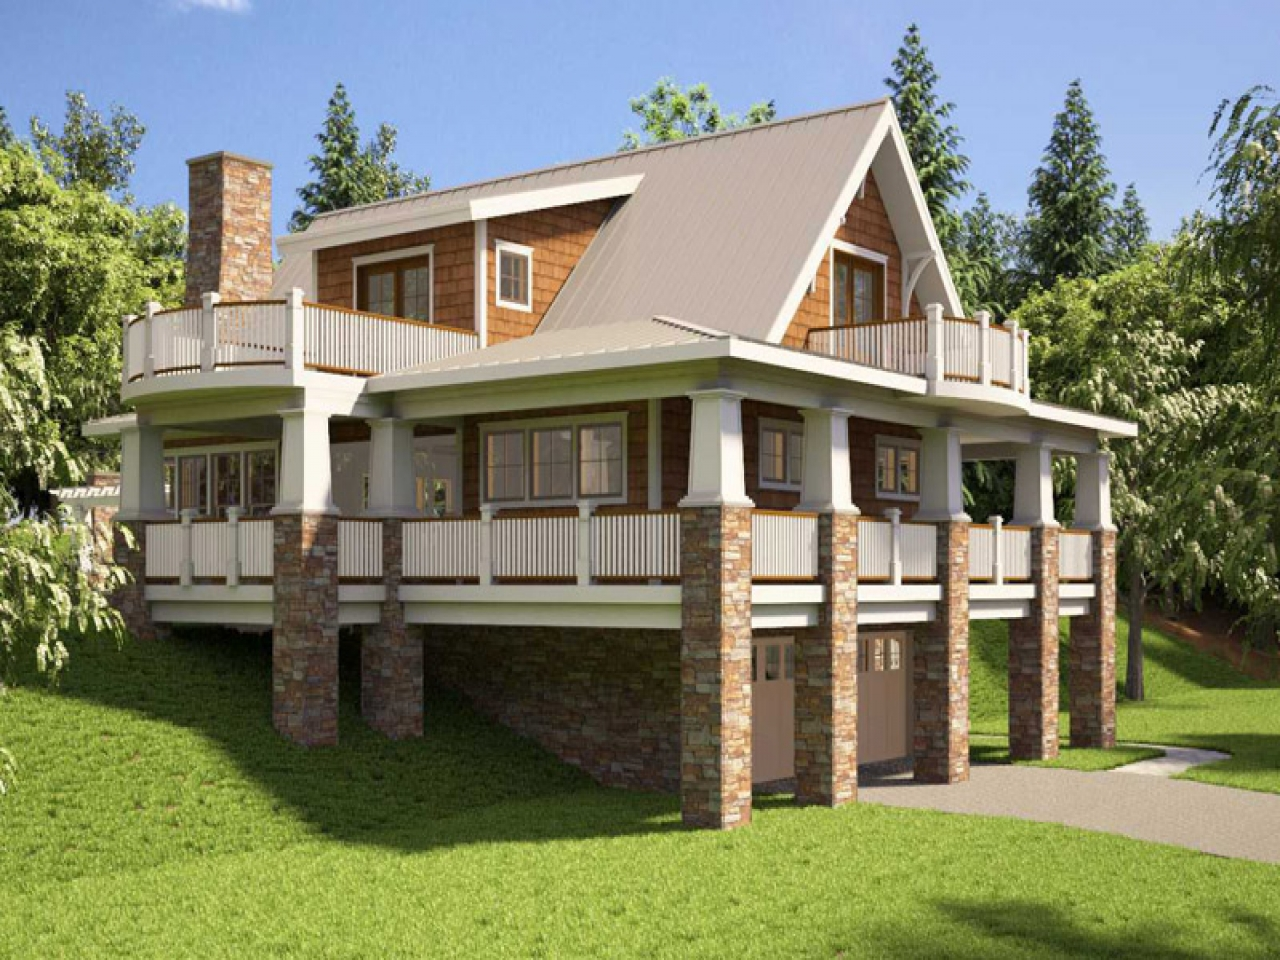 Hillside house plans with walkout basement hillside house Hillside garage plans